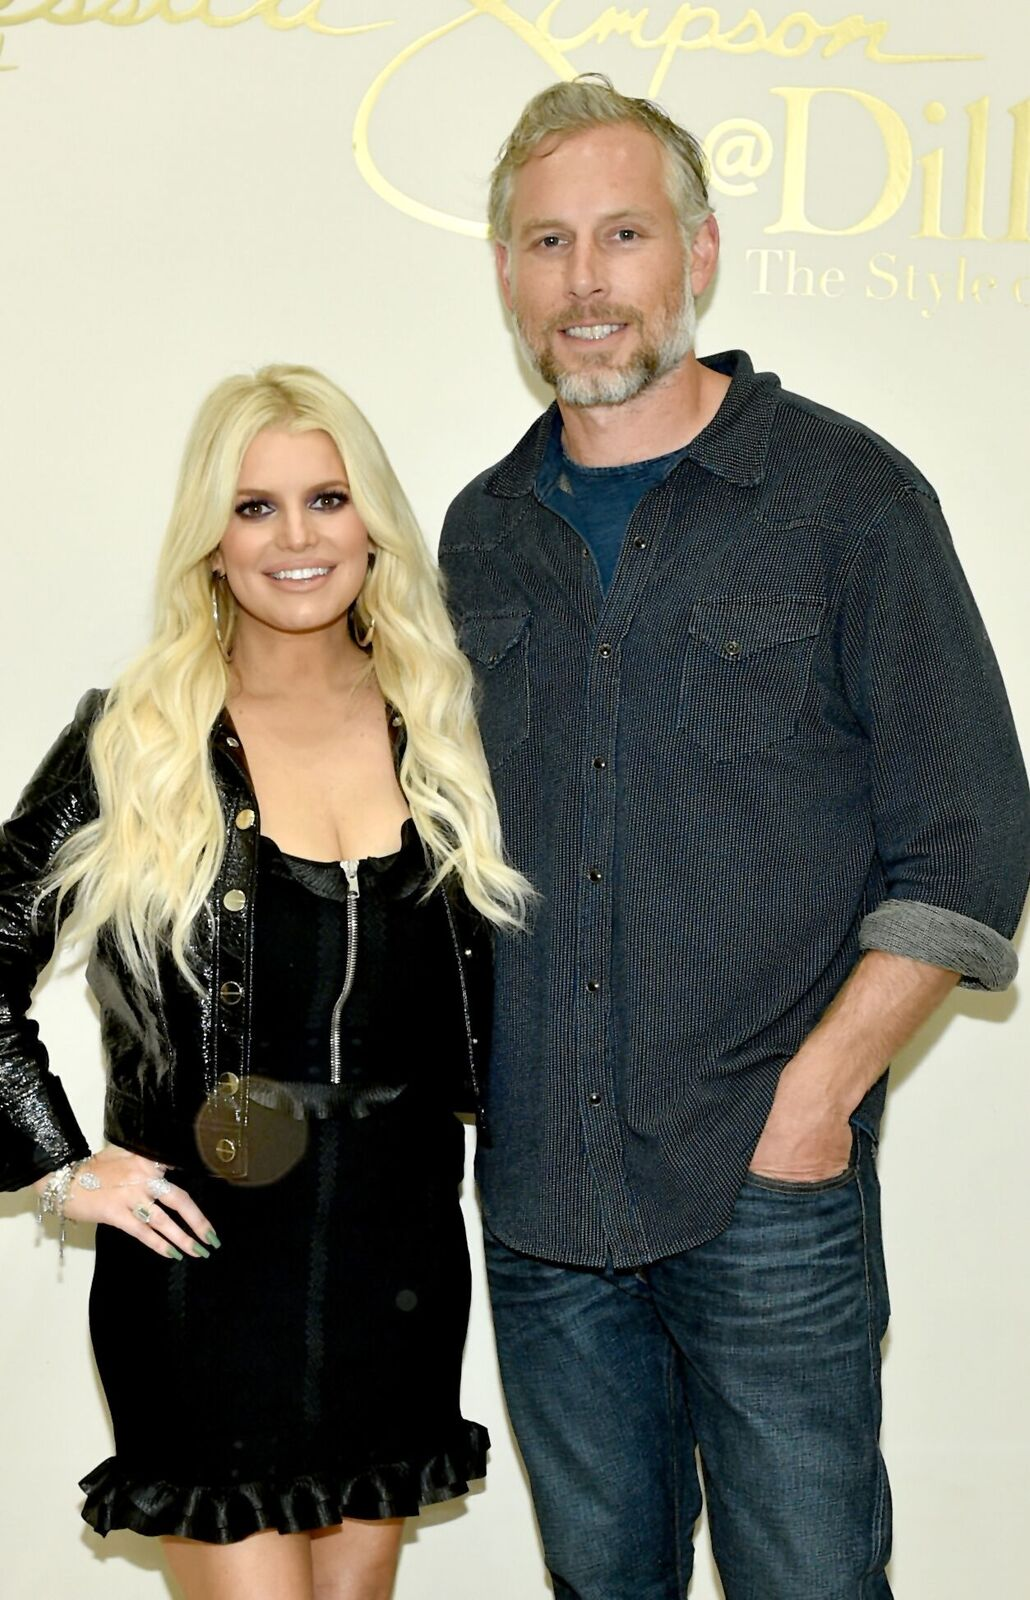 Jessica Simpson and Eric Johnson take photos during a spring style event in Dillards at The Mall at Green Hills hosted by Jessica Simpson on April 7, 2018 in Nashville, Tennesse | Photo: Getty Images